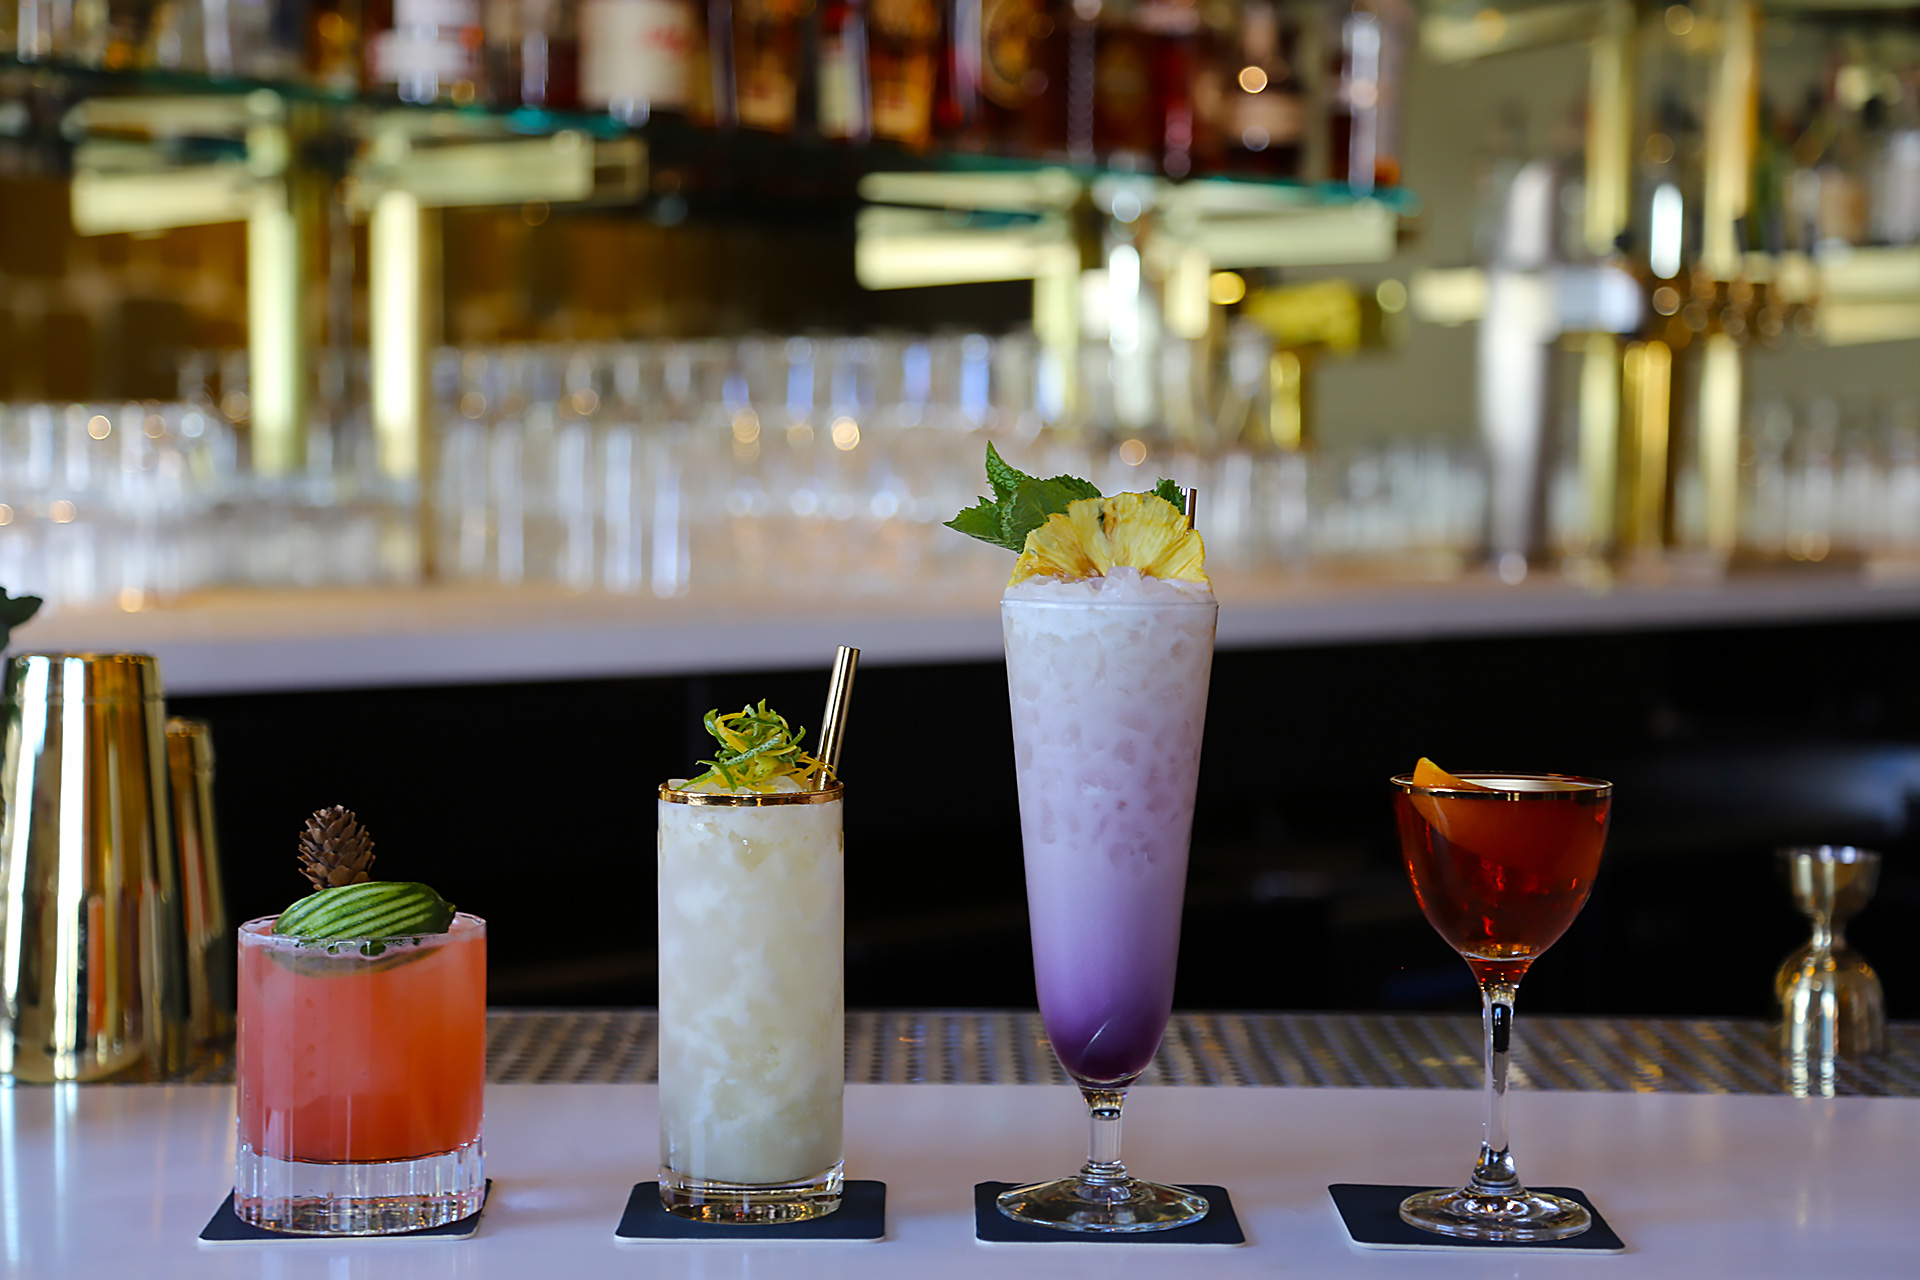 The Beehive cocktails (L to R): Thunderbird, Ipanema Gold, Bikini Drifter, Rising Sun